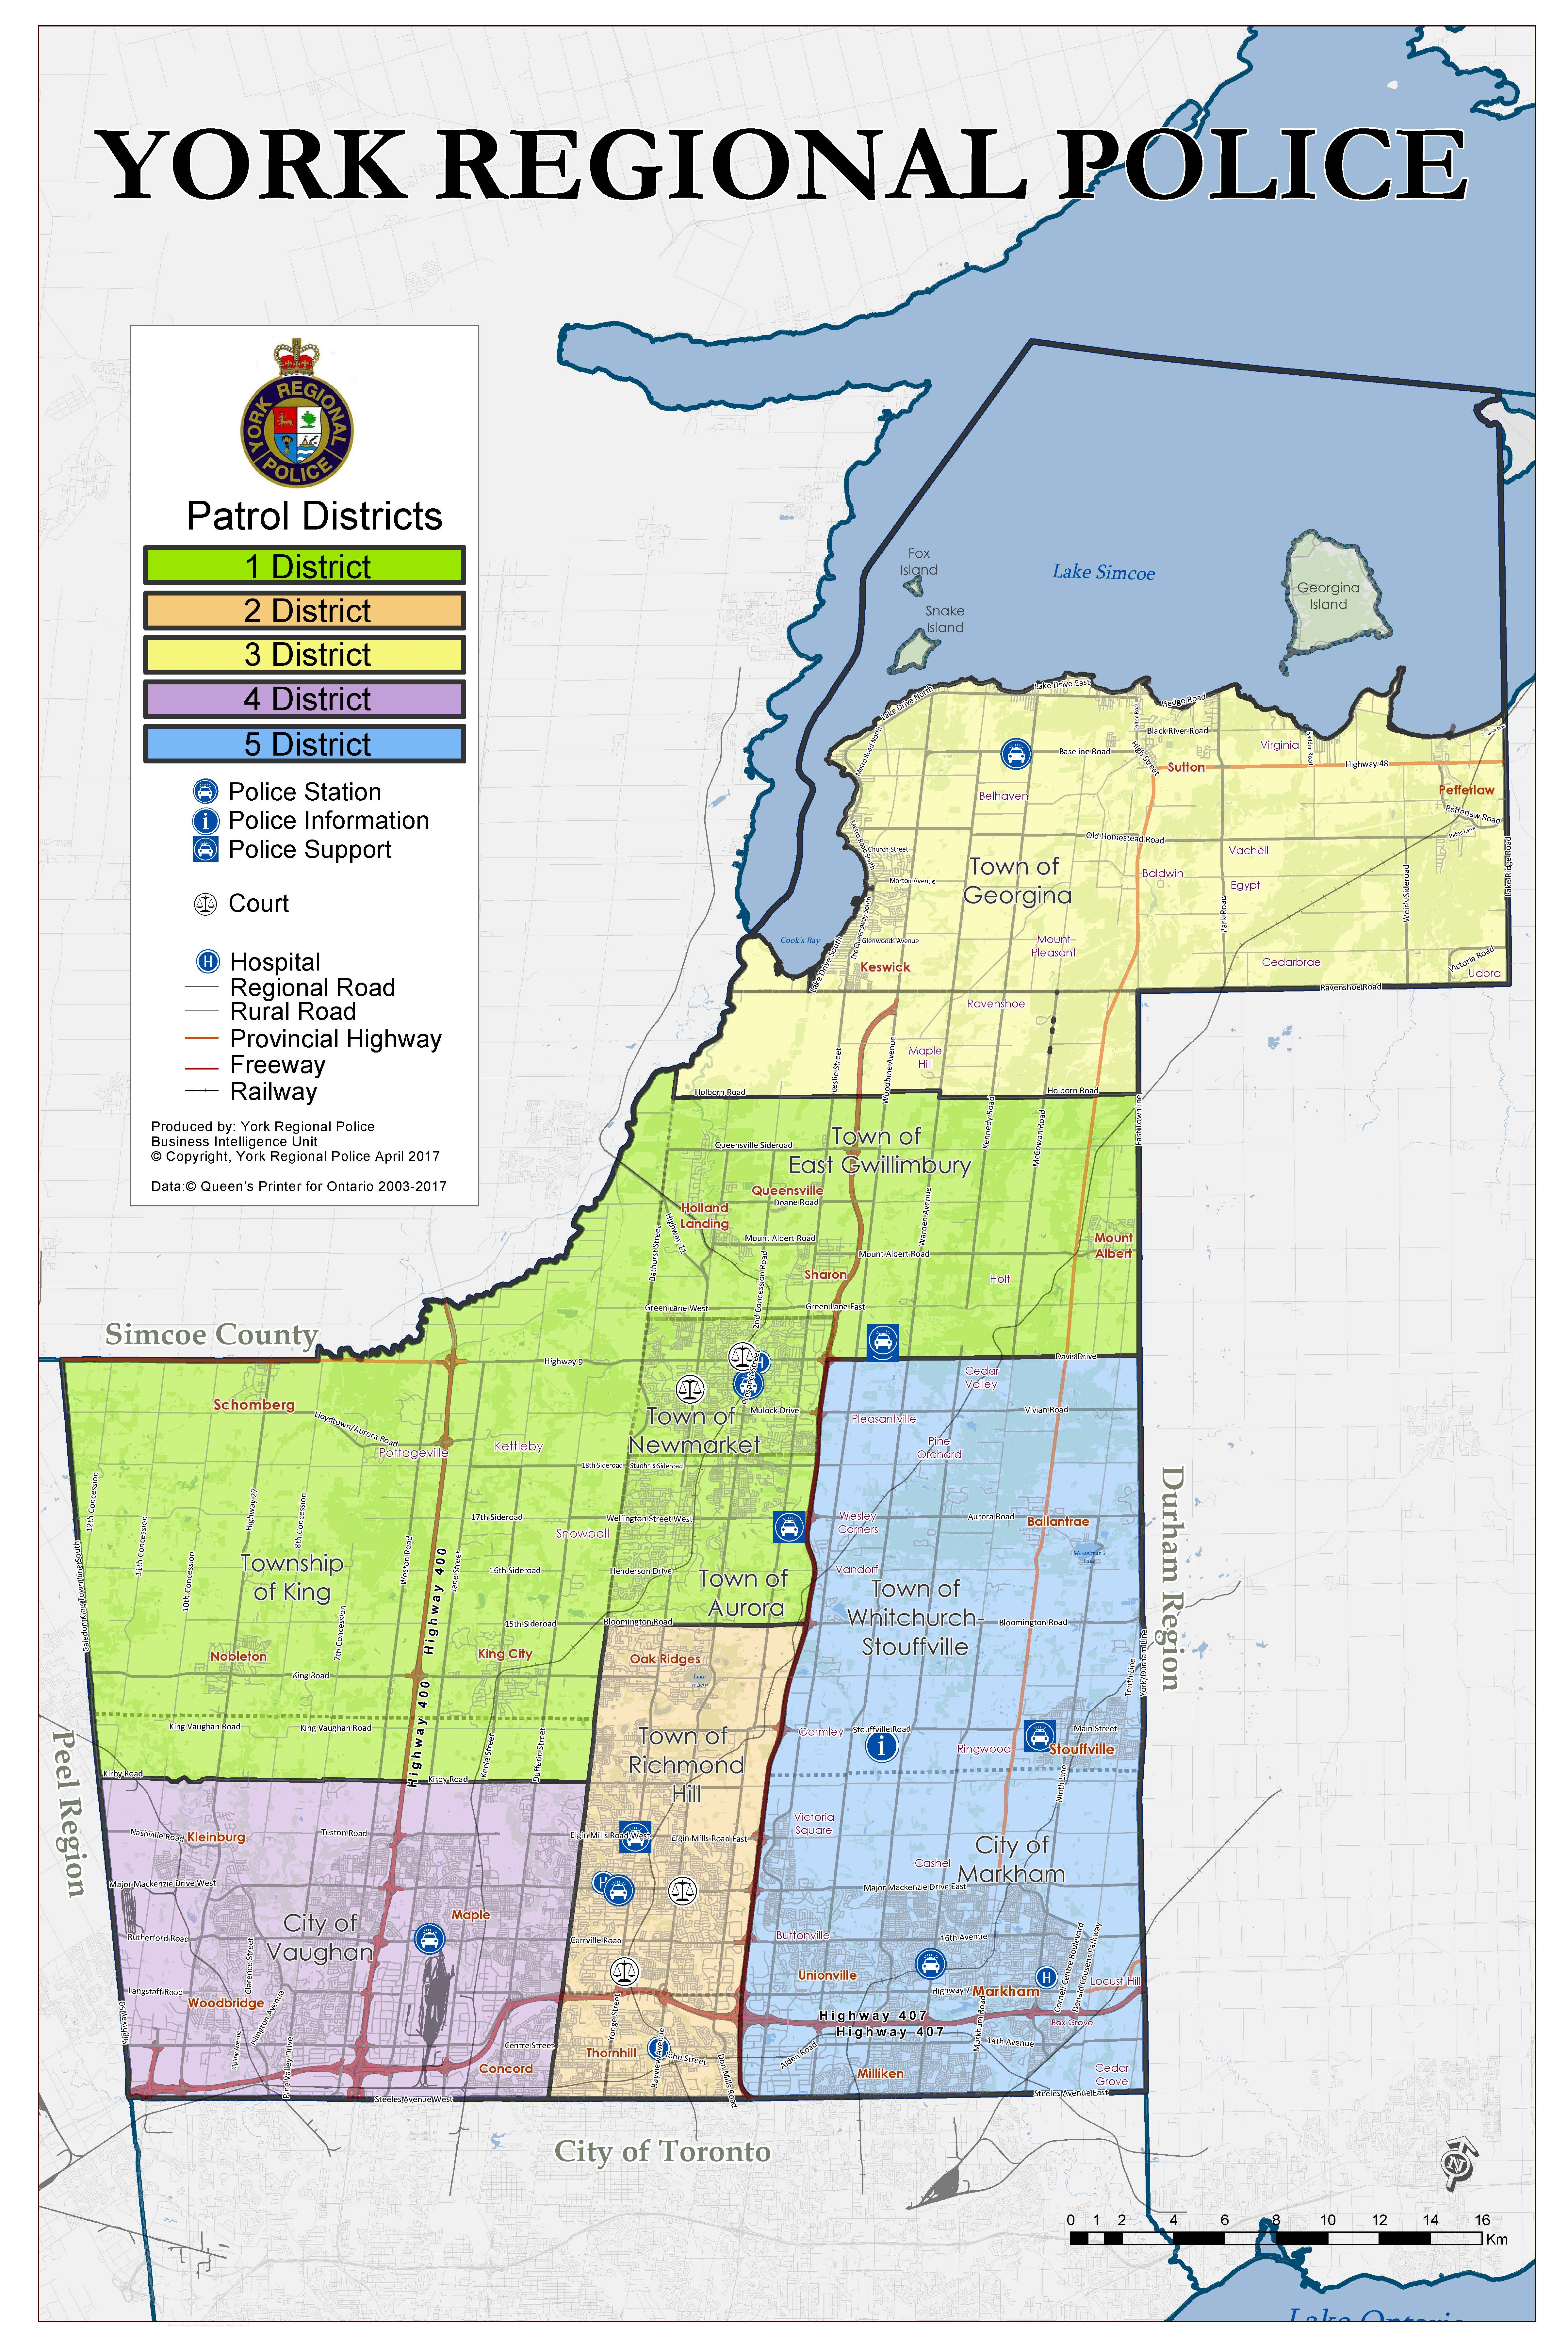 Map Of York Region Districts   York Regional Police Map Of York Region